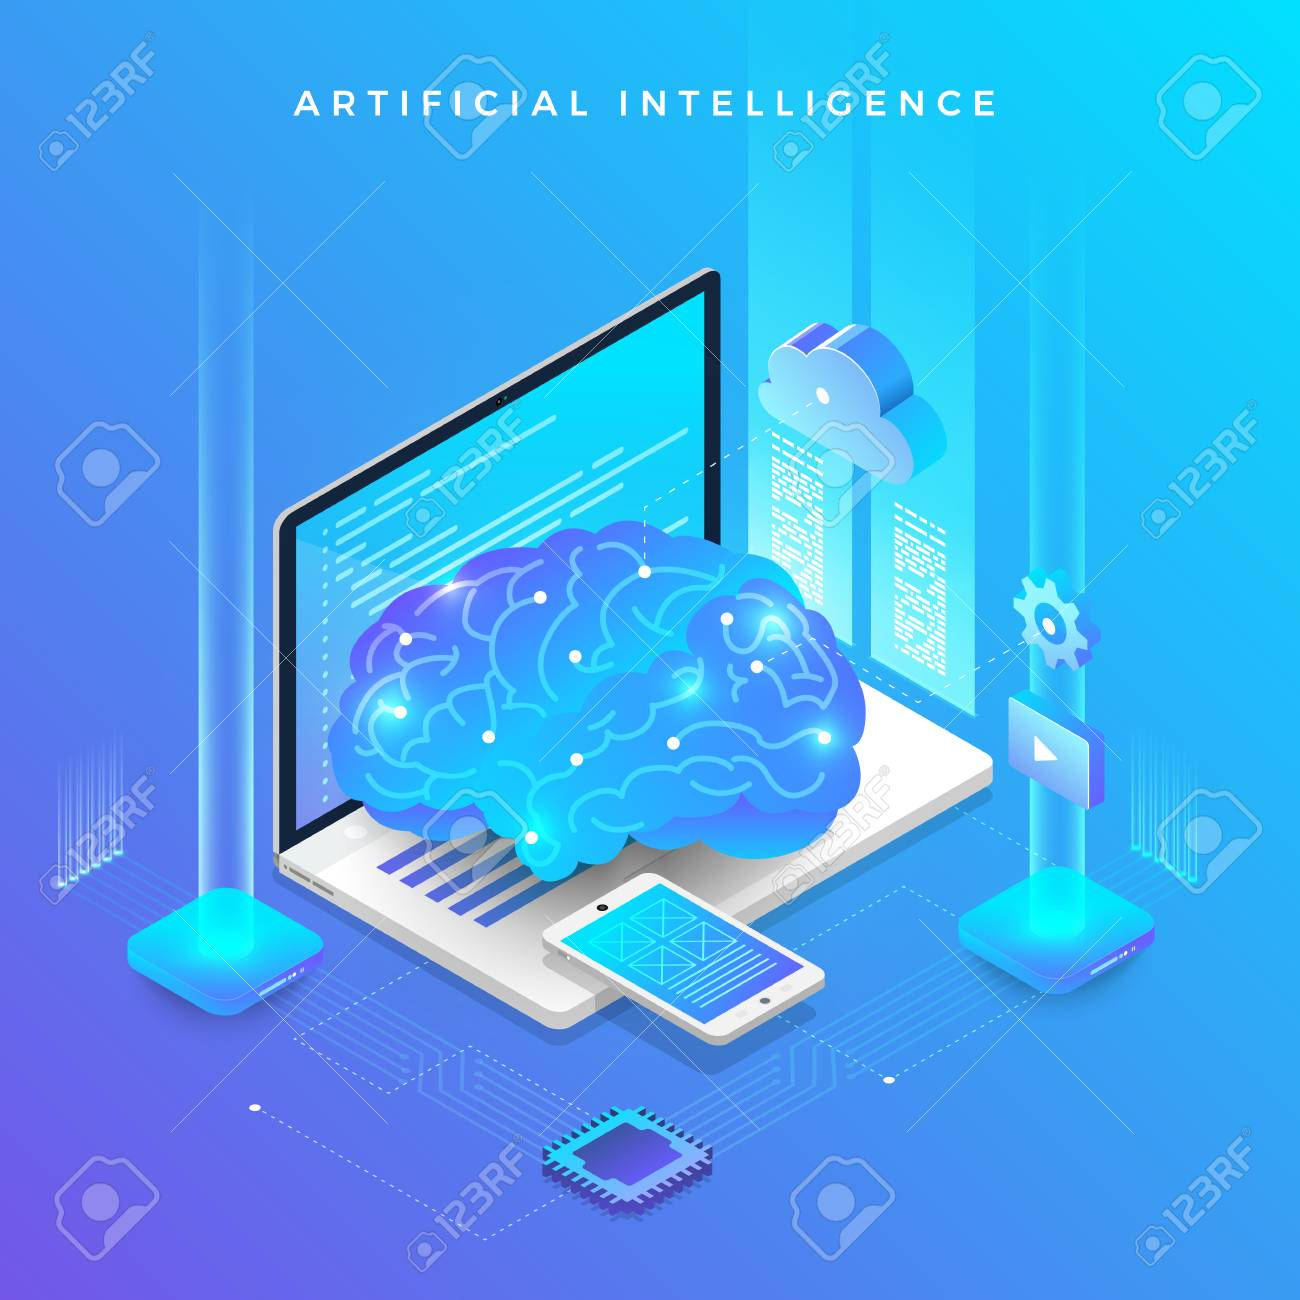 Illustrations concept artificial intelligence AI. Technology working with smart brain computer and machine connecting device. Isometric vector illustrate. - 107940572